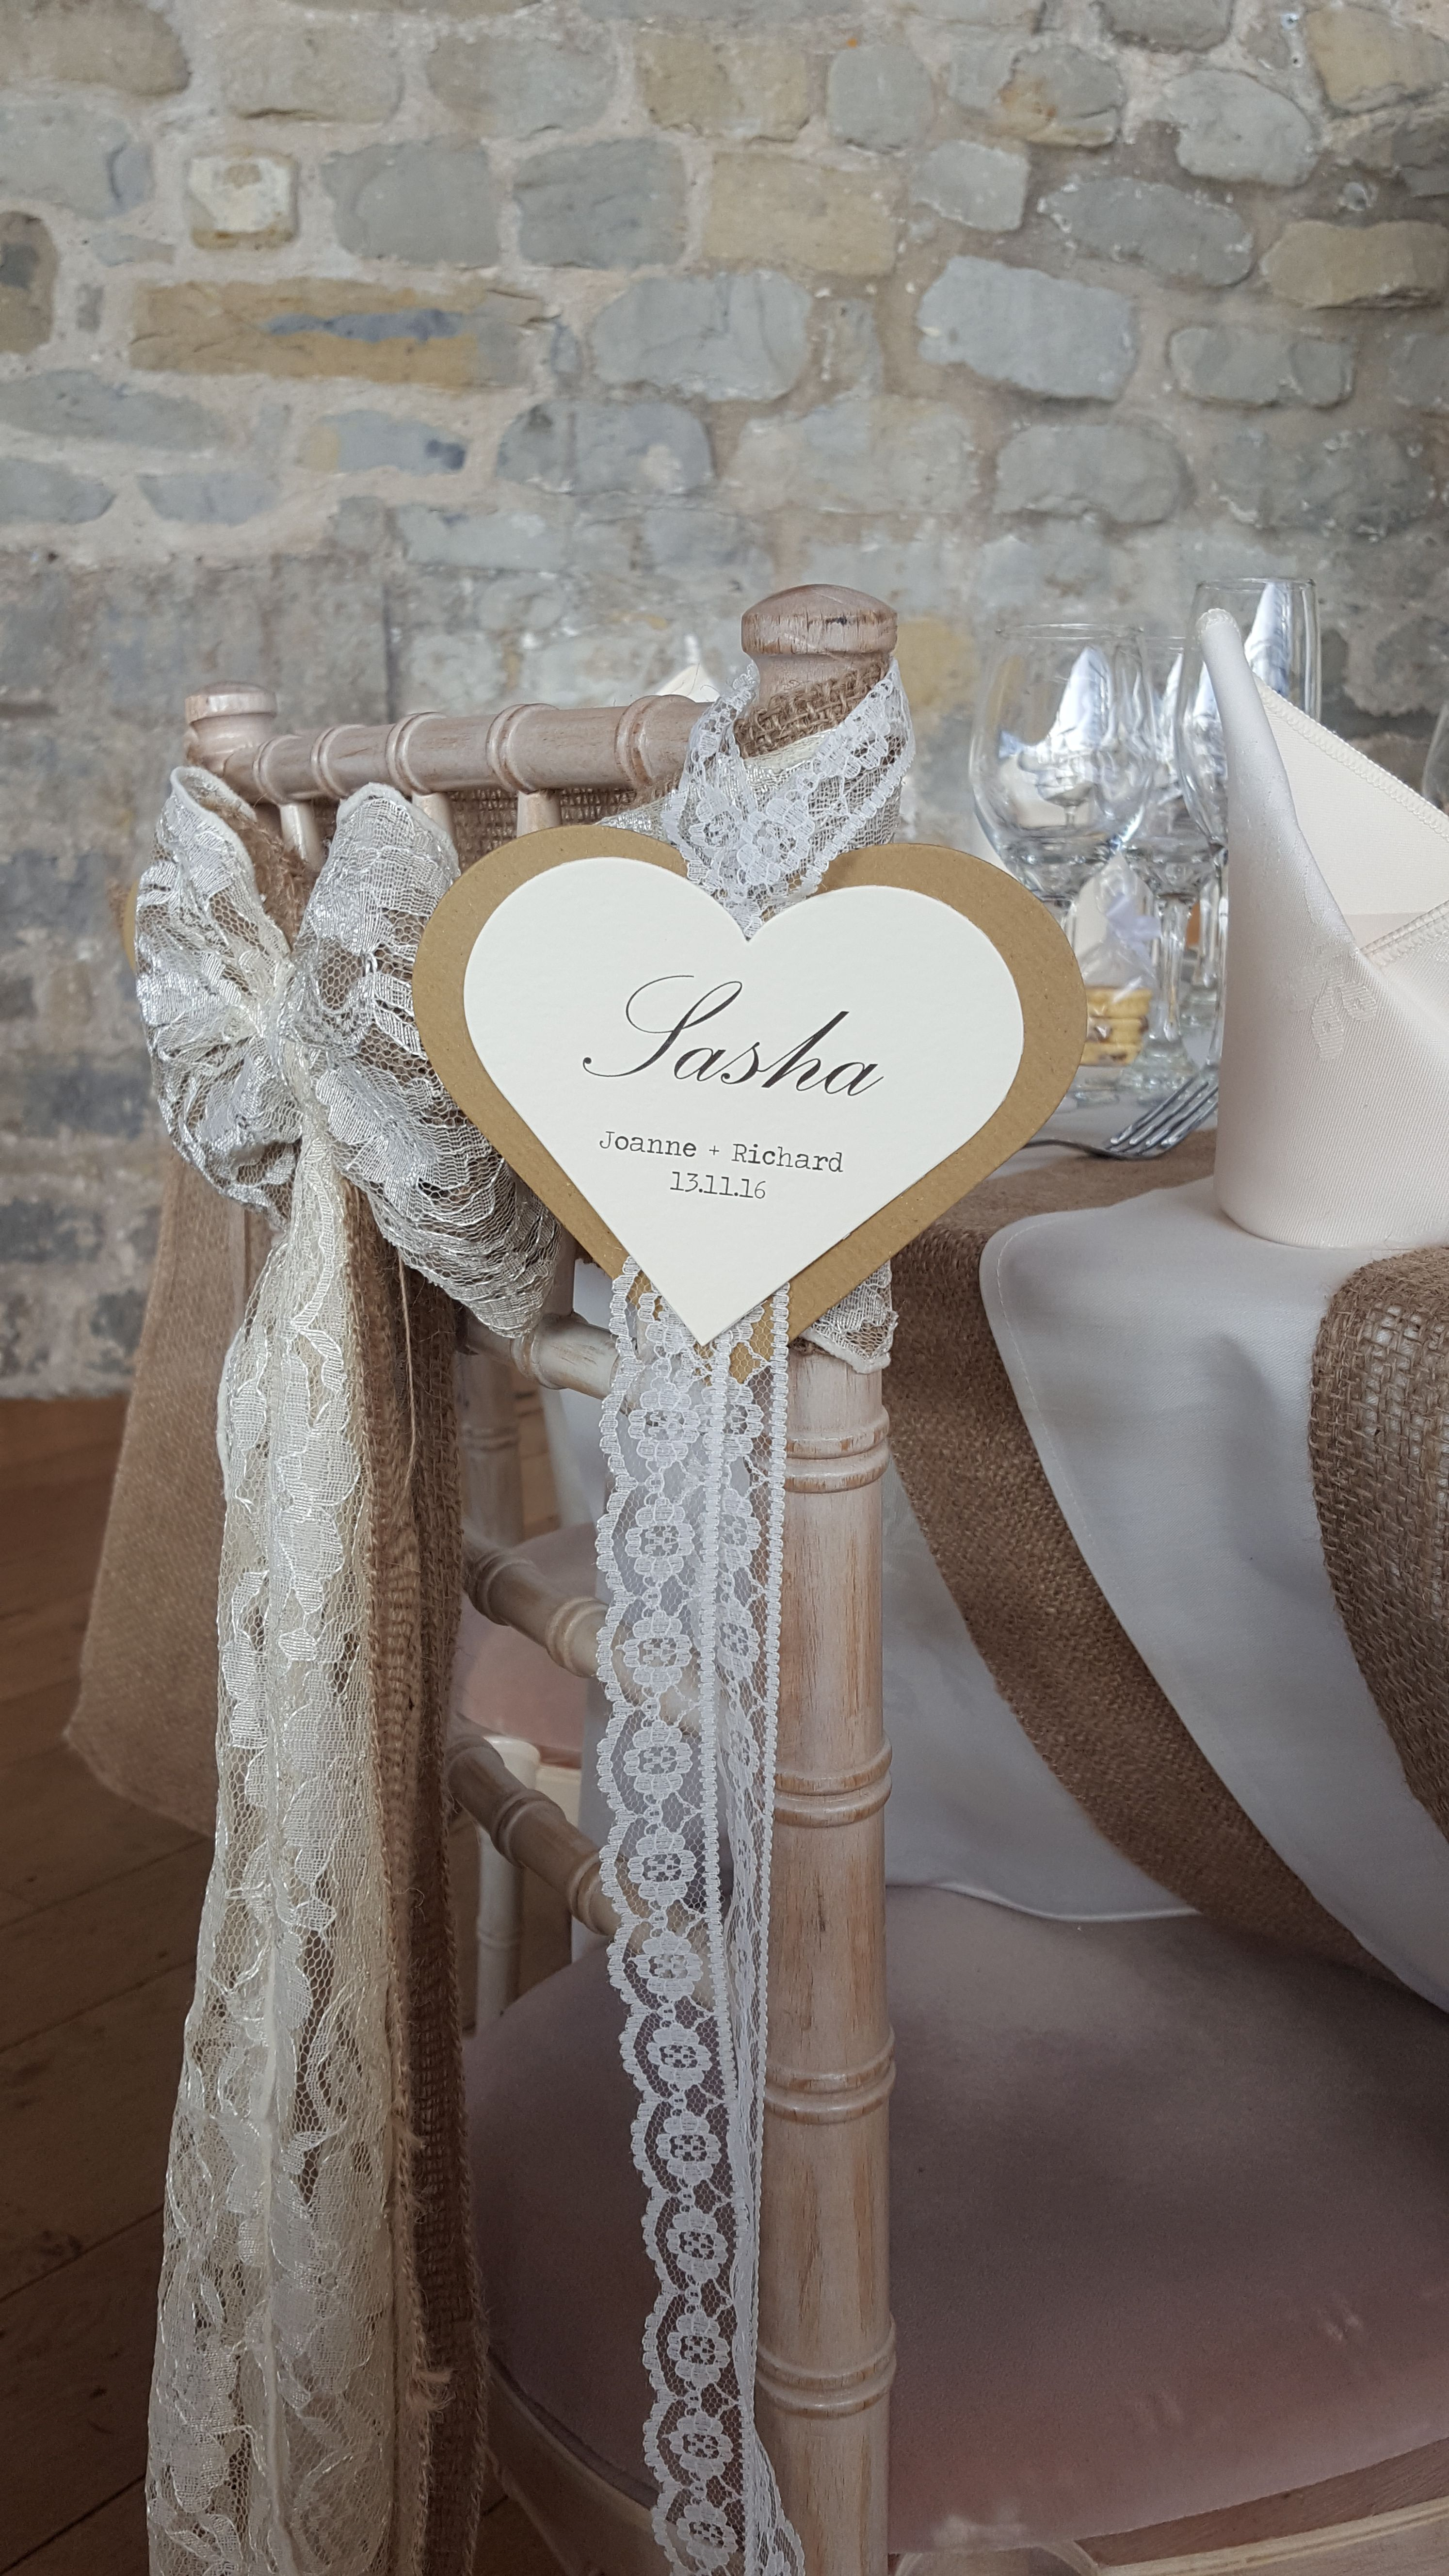 Wedding Chair Back Decorations Diy Covers No Sew Rustic Romantic Place Name Heart Shape